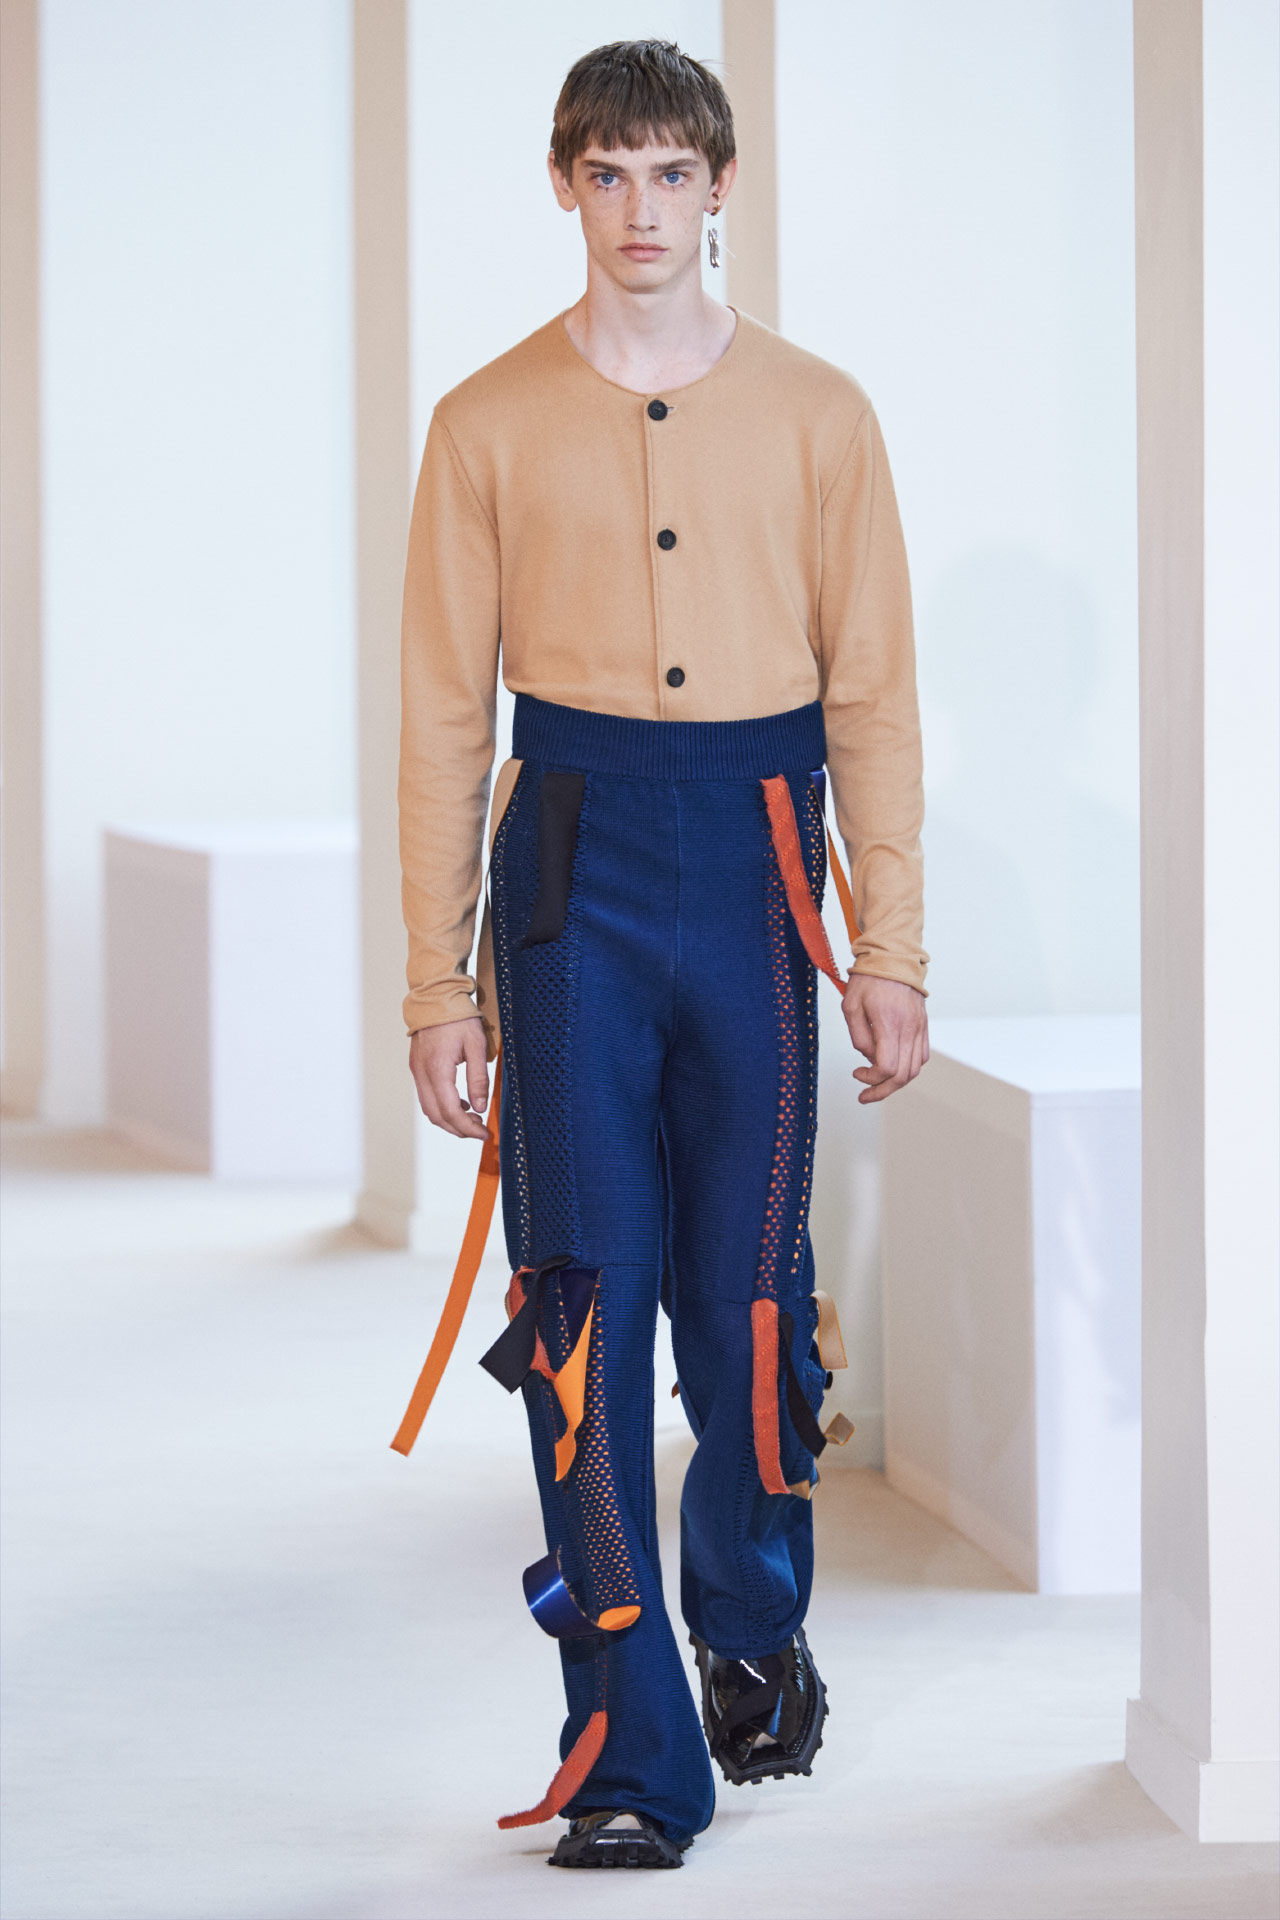 Look Spring/Summer, image 34